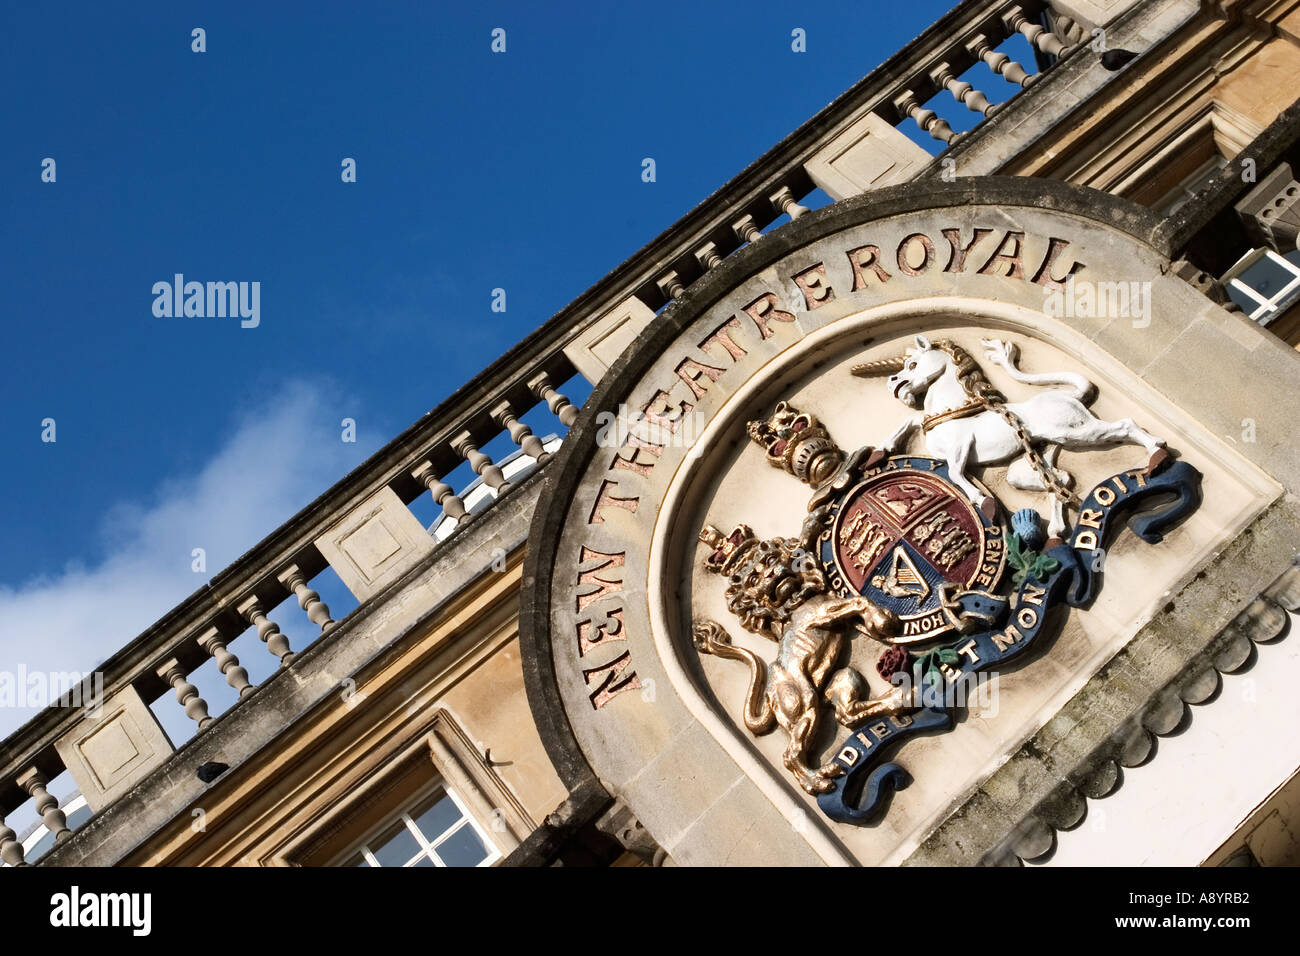 Coat of Arms above the entrance to the New Theatre Royal in Bath Somerset England Stock Photo